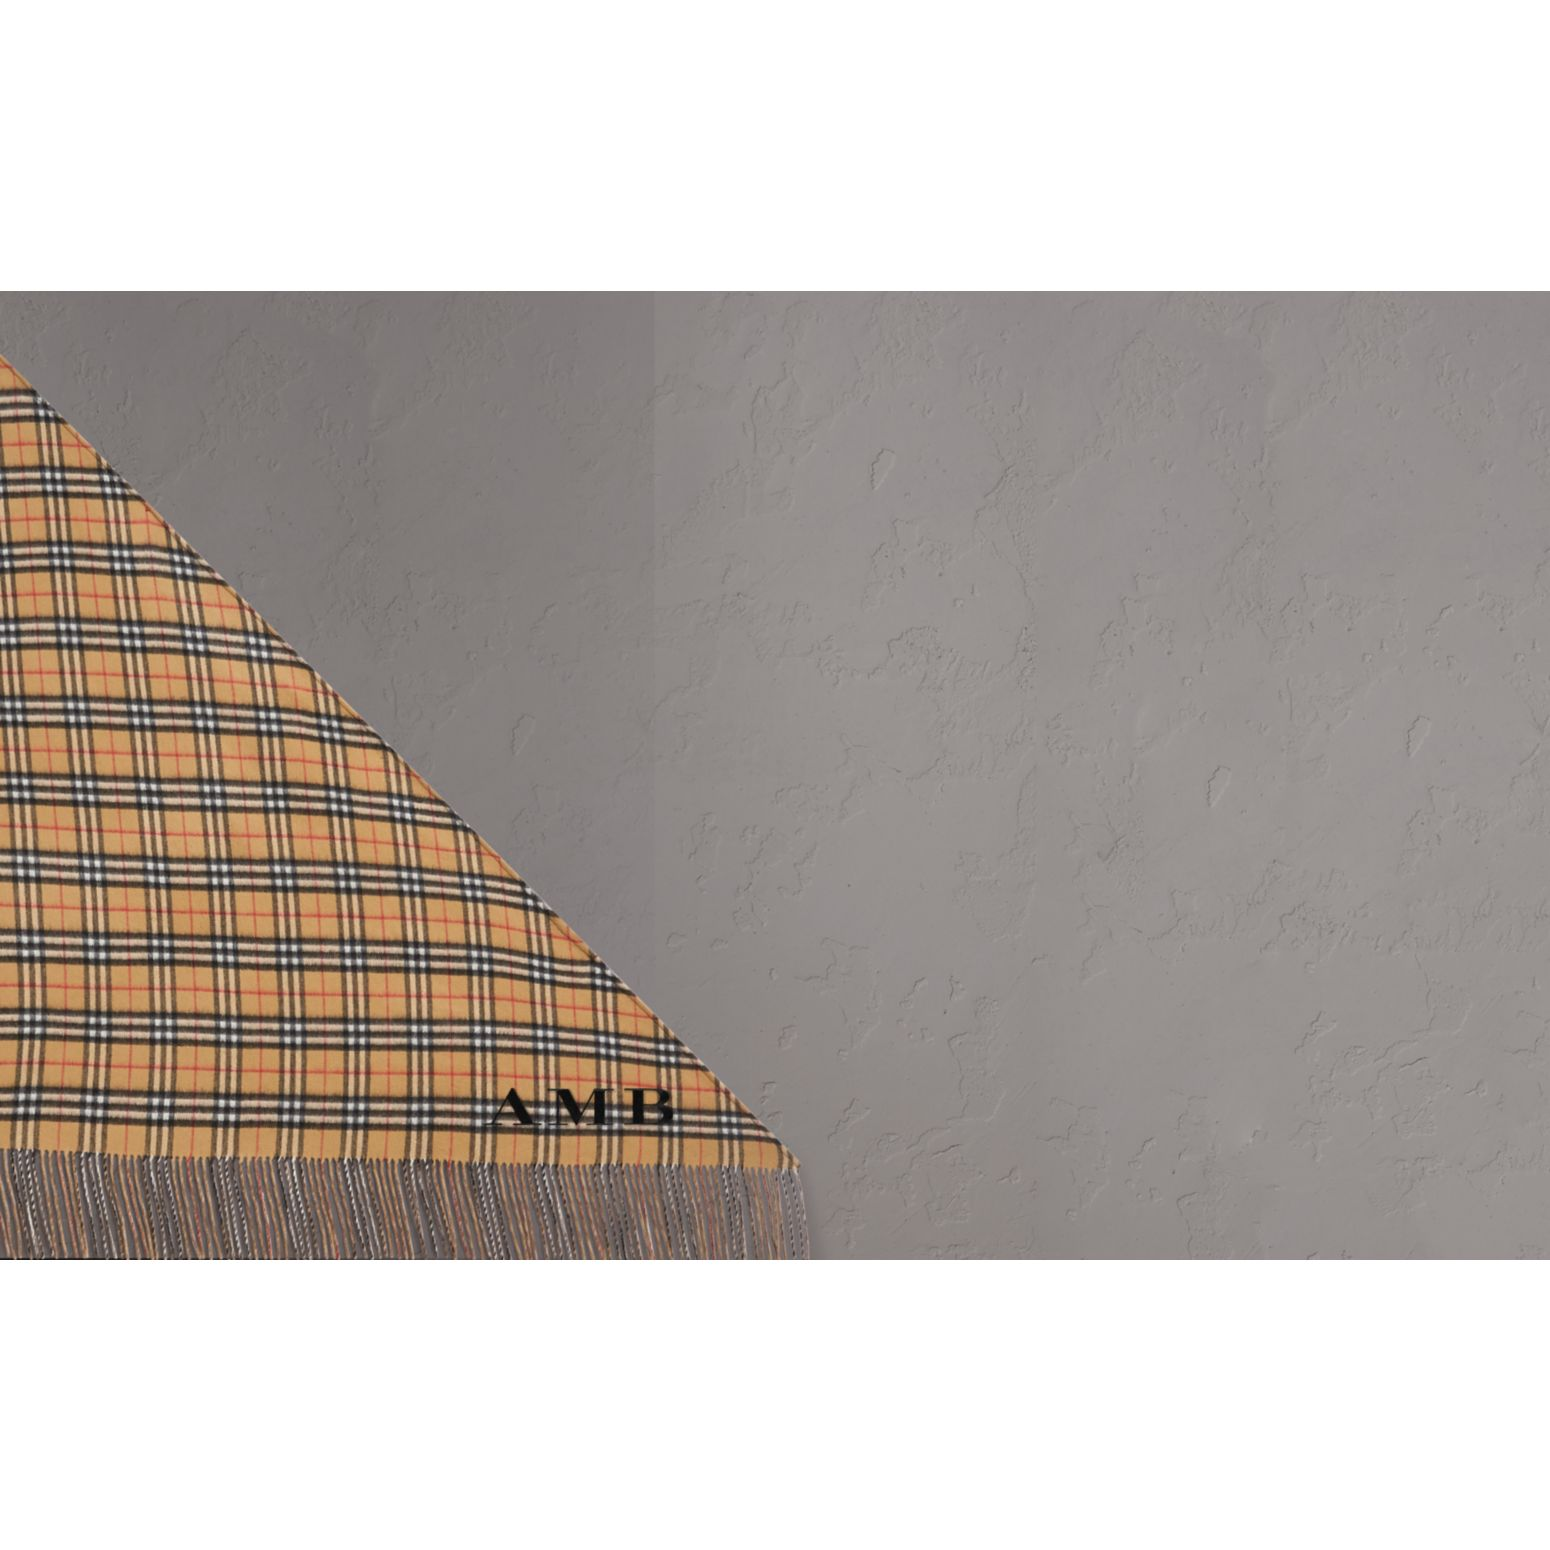 The Burberry Bandana in Vintage Check Cashmere in Sandstone | Burberry - gallery image 1